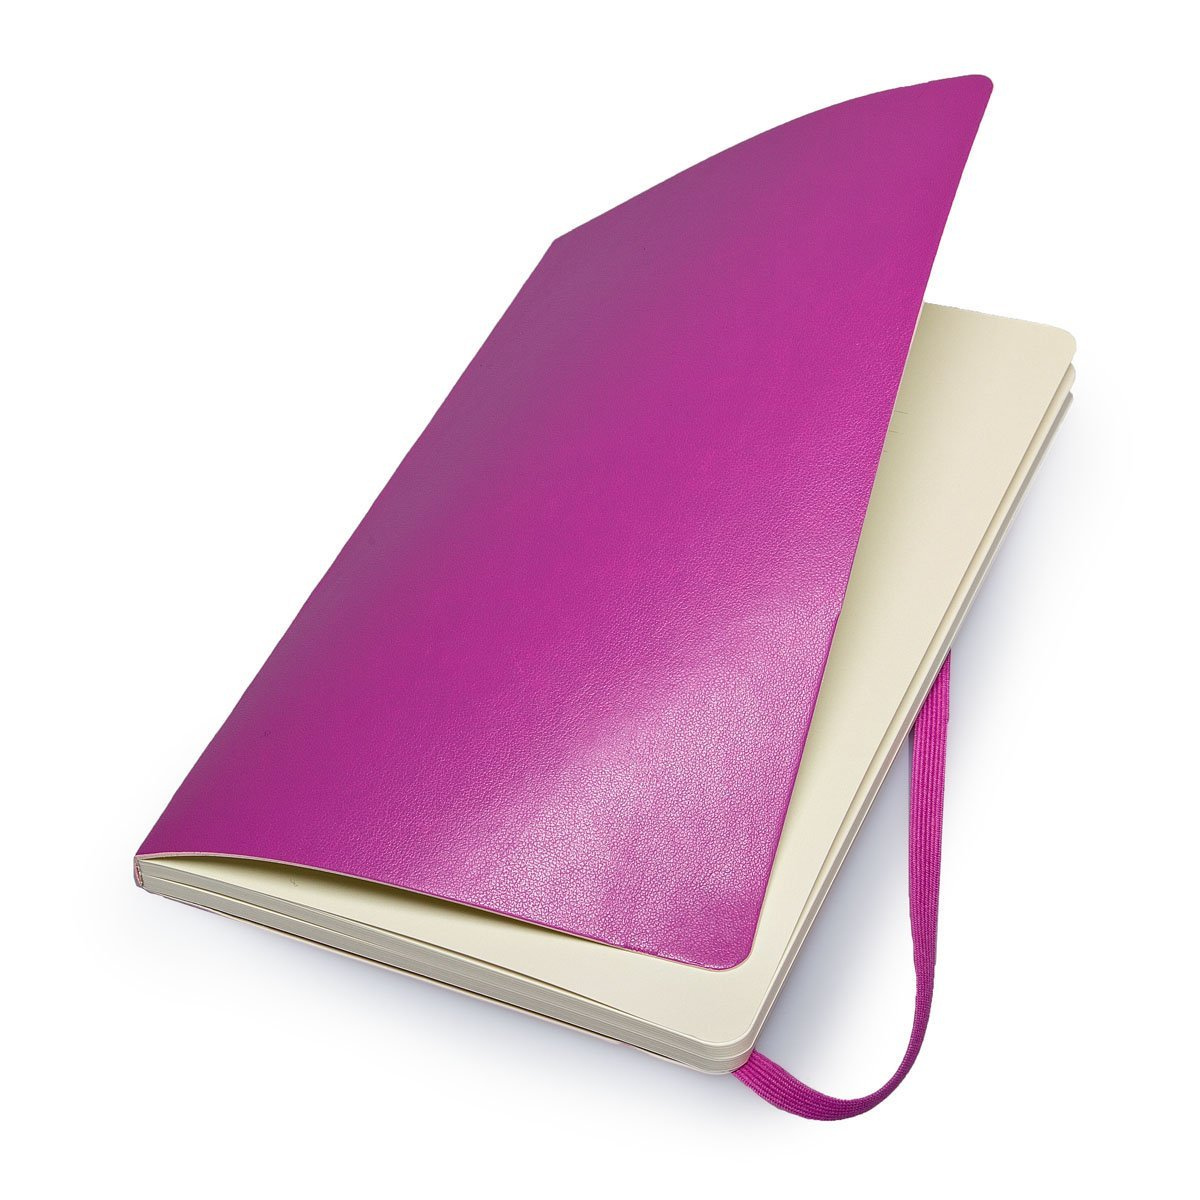 Moleskine Classic Colored Notebook, Large, Plain, Orchid Purple, Soft Cover (5 x 8.25)